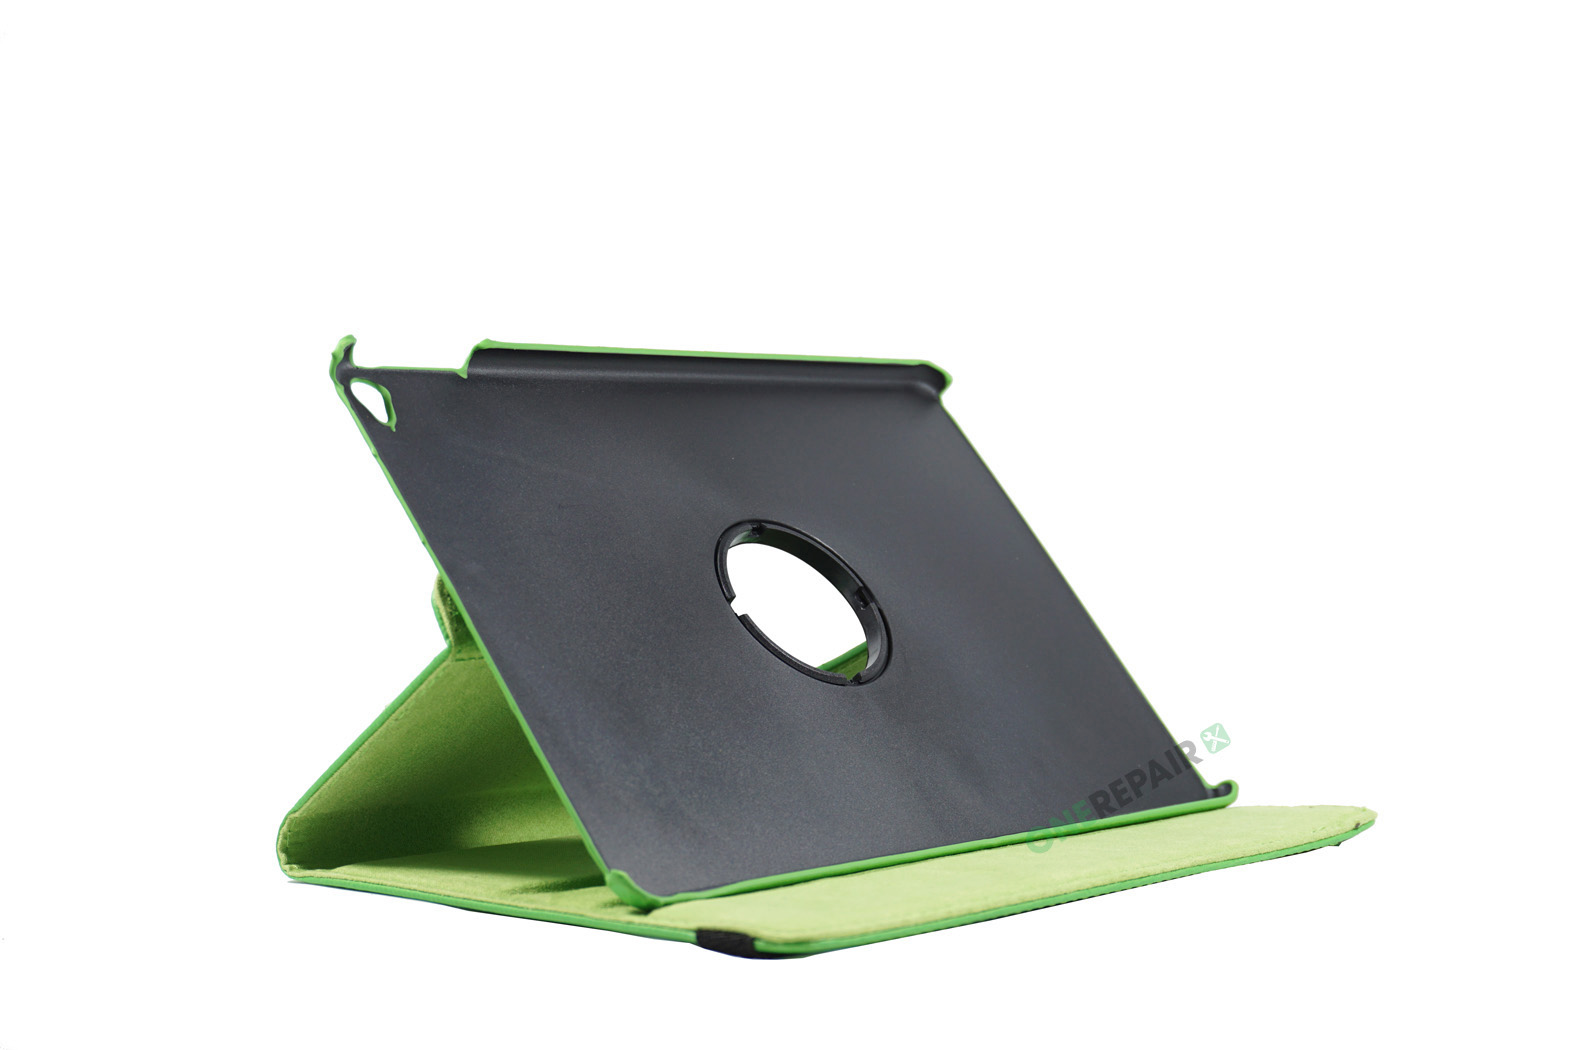 351018_iPad_Air_A1474_A1475_A1476_Flipcover_Cover_Groen_OneRepair_00006